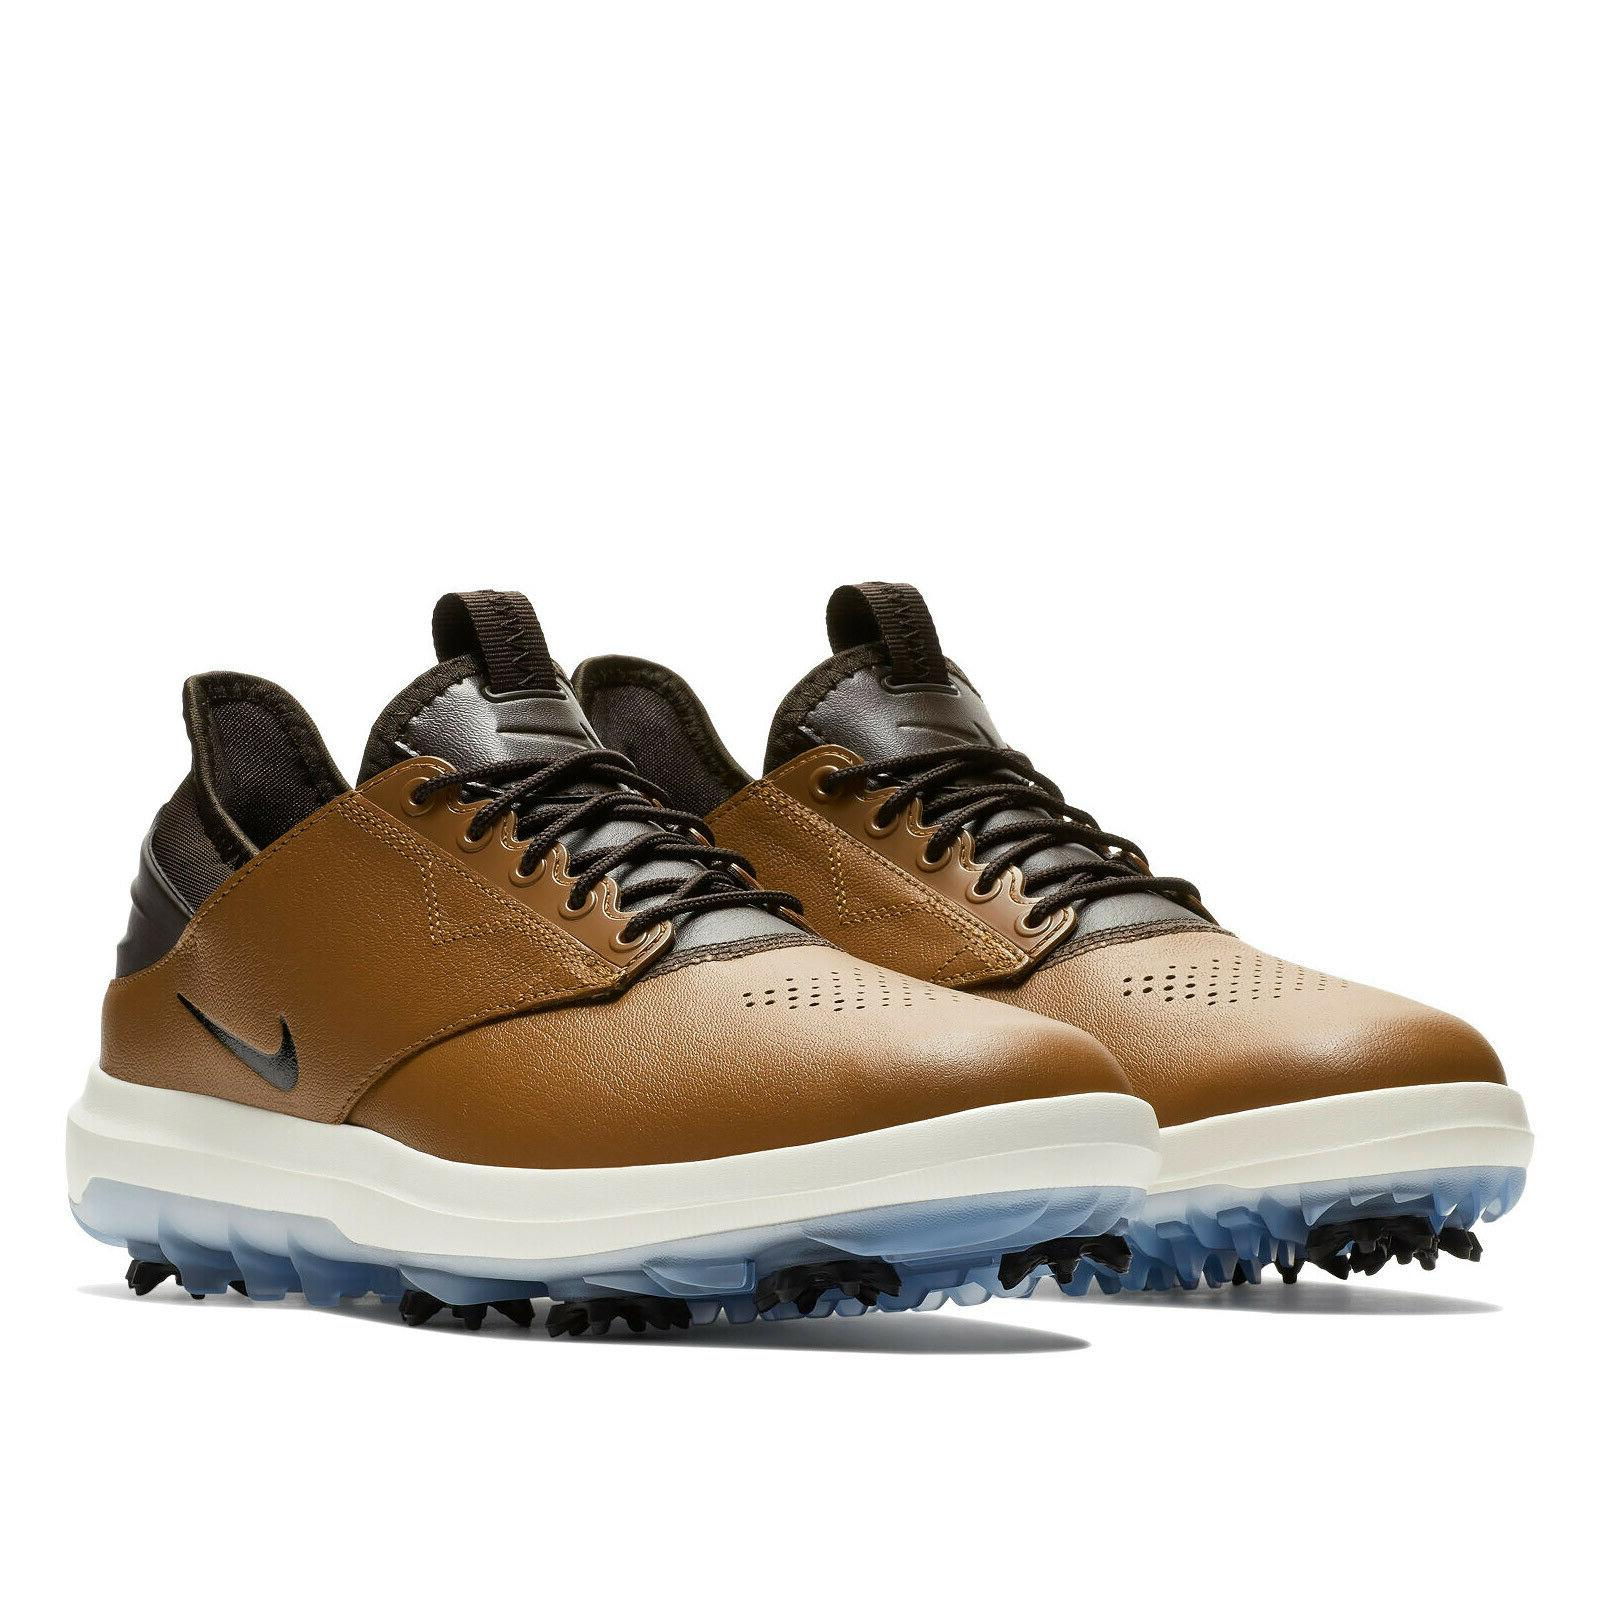 New NIKE Zoom Mens Shoes Brown